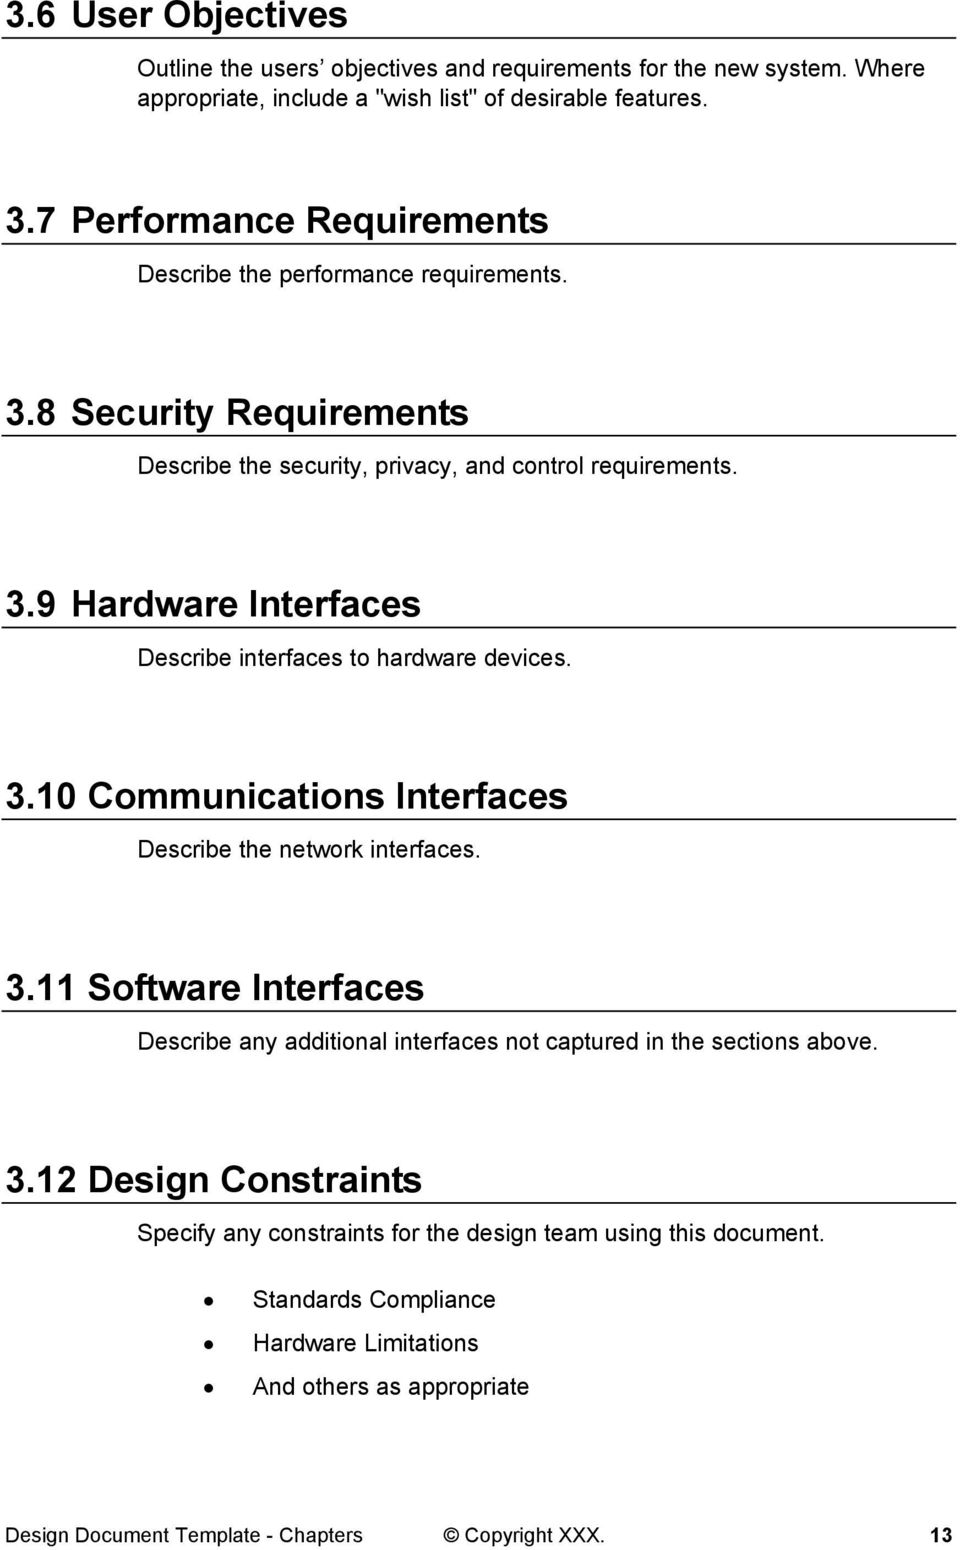 3.10 Communications Interfaces Describe the network interfaces. 3.11 Software Interfaces Describe any additional interfaces not captured in the sections above. 3.12 Design Constraints Specify any constraints for the design team using this document.